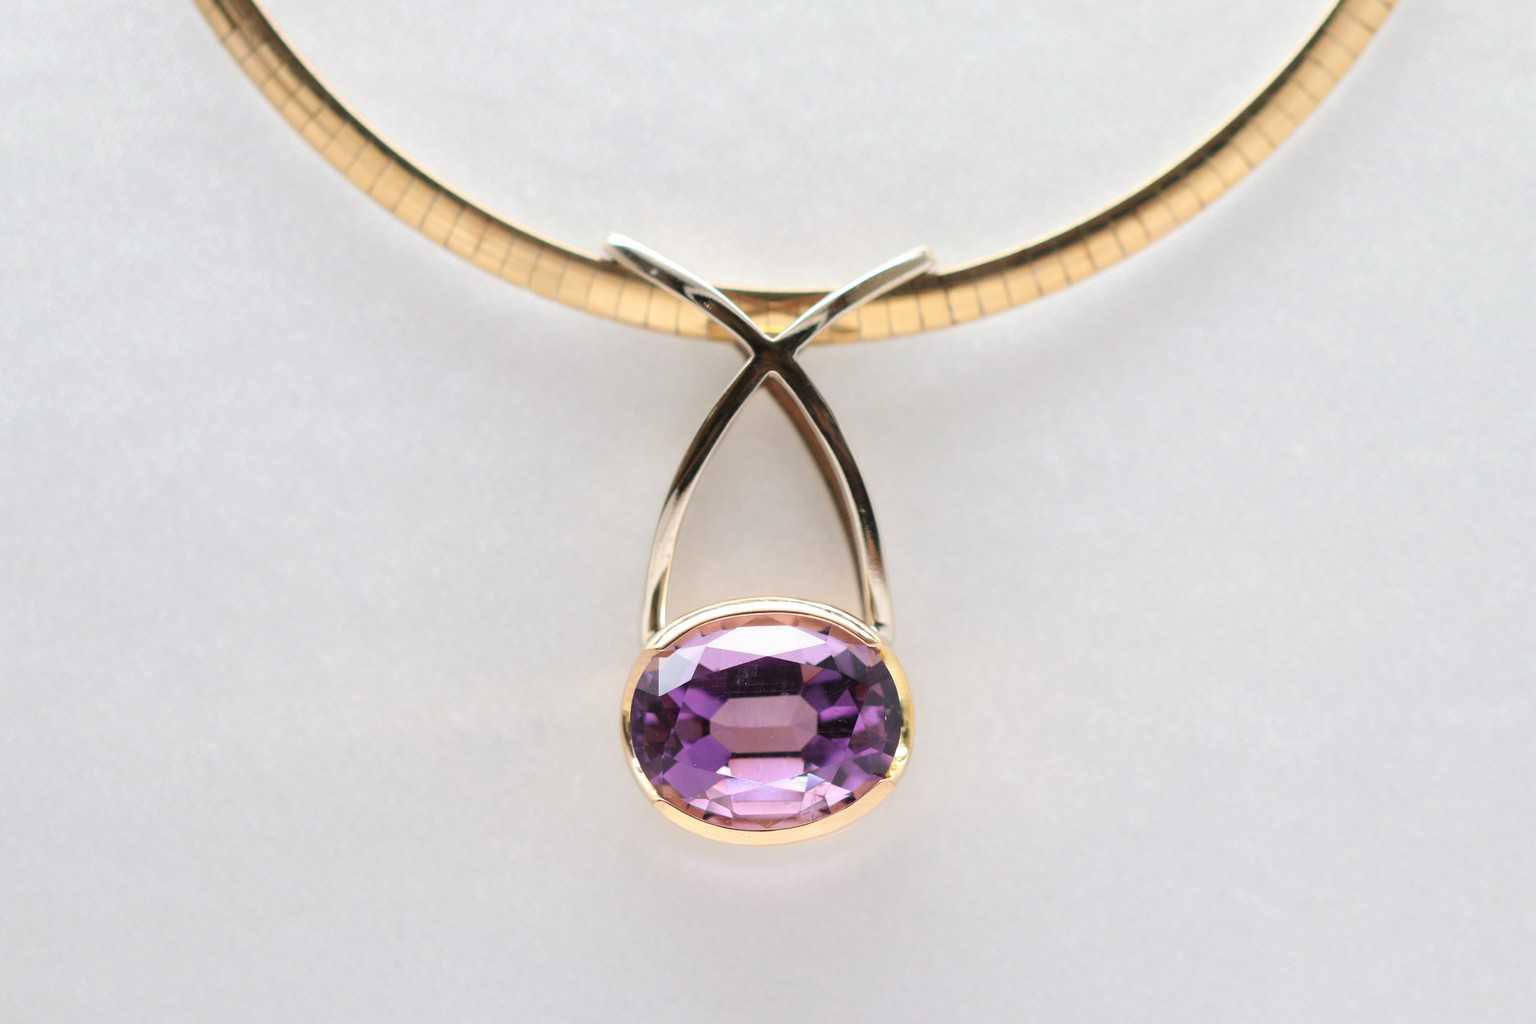 Gemstone pendants david adams fine jewelry oval amethyst pendant aloadofball Image collections